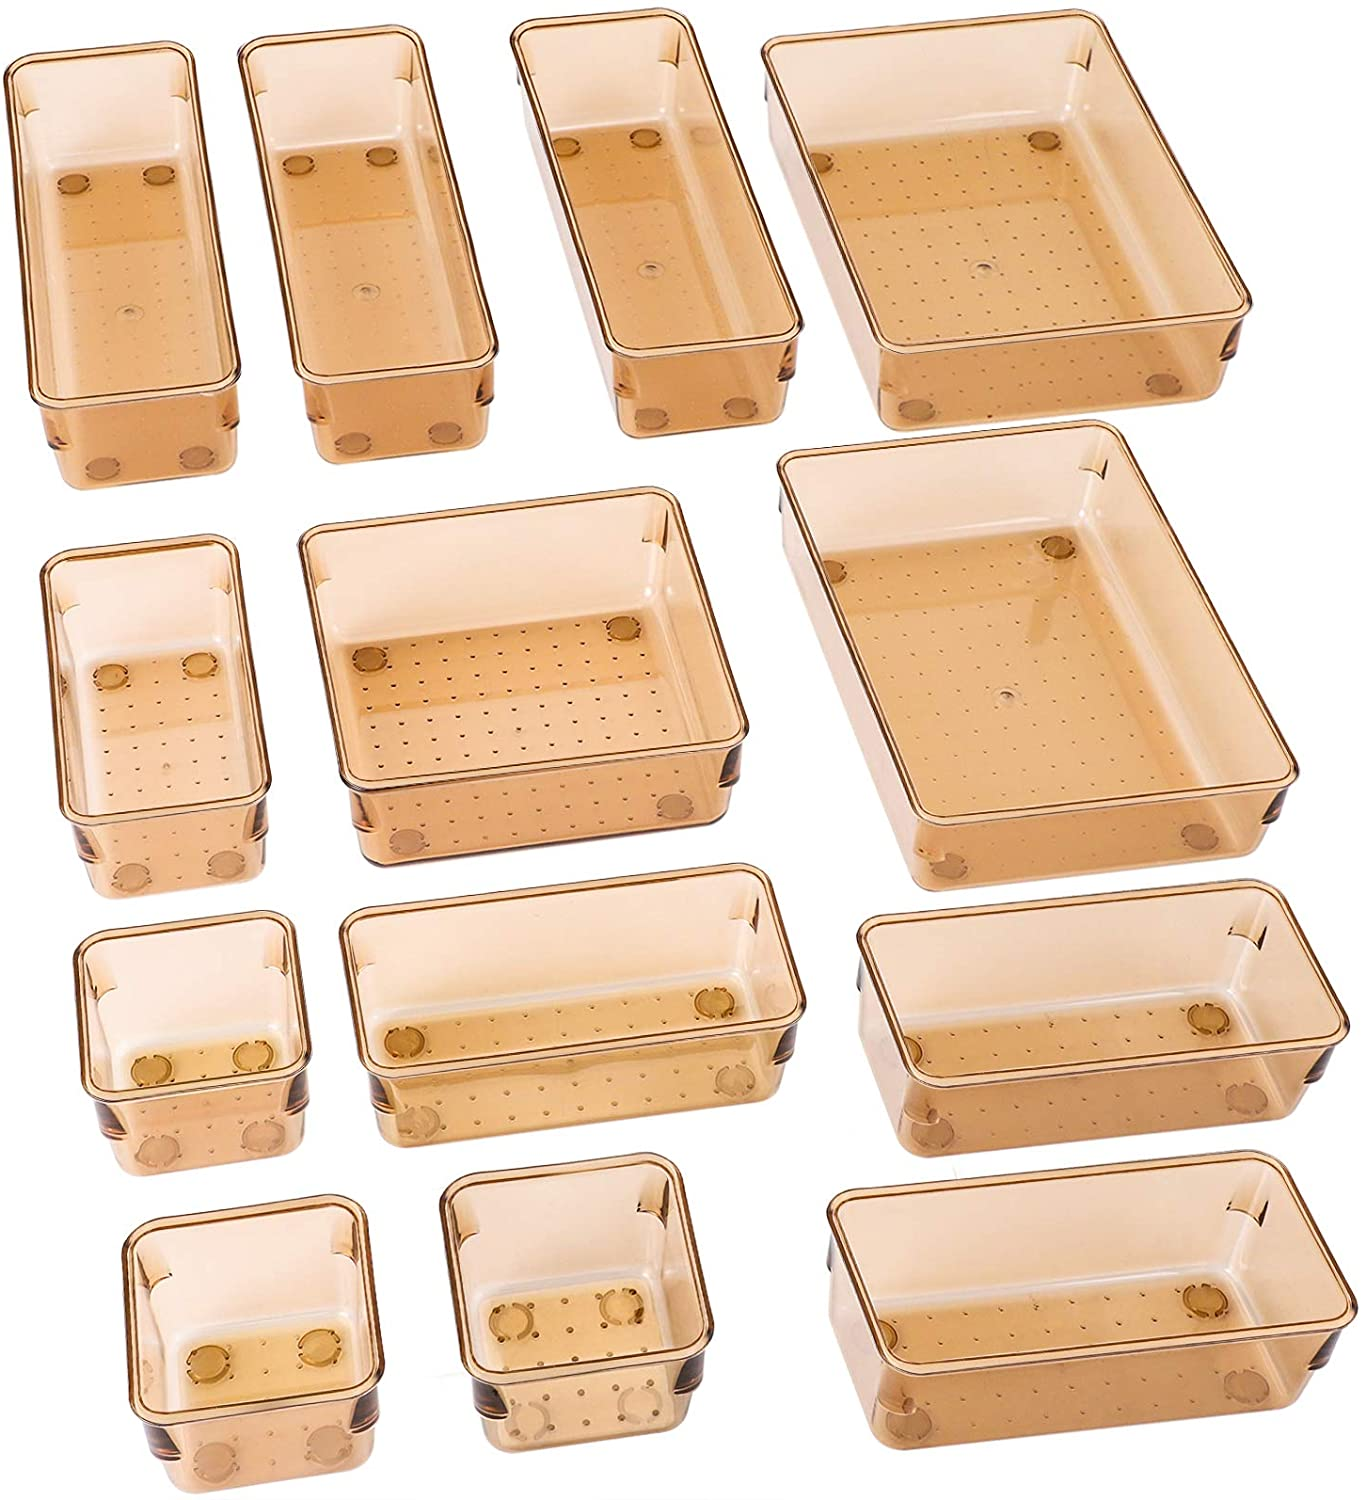 SMARTAKE 13-Piece Drawer Organizers with Non-Slip Silicone Pads, 5-Size Desk Drawer Organizer Trays Storage Tray for Makeup, Jewelries, Utensils in Bedroom Dresser, Office and Kitchen, Brown